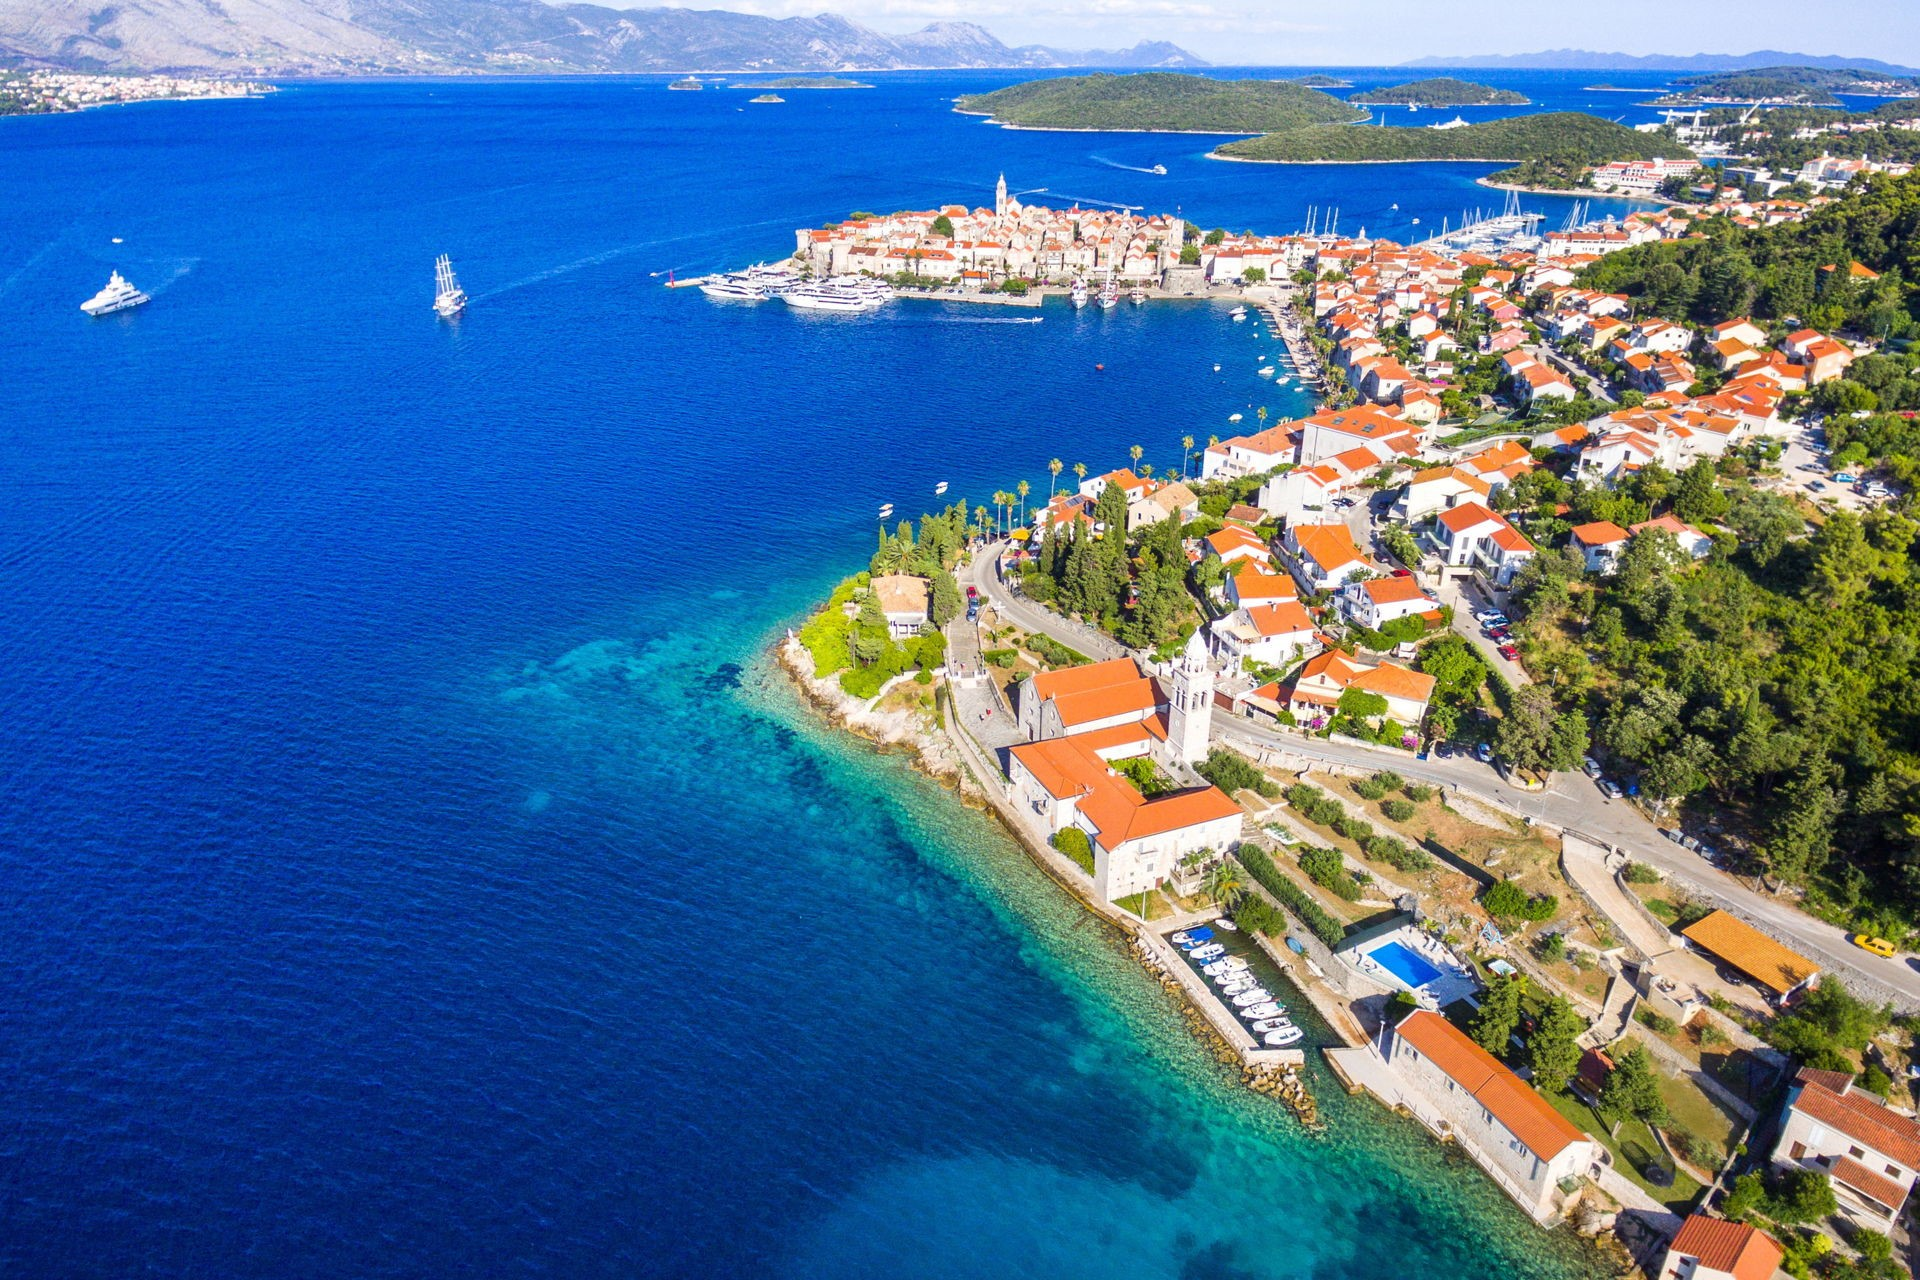 Island of Korcula from the air